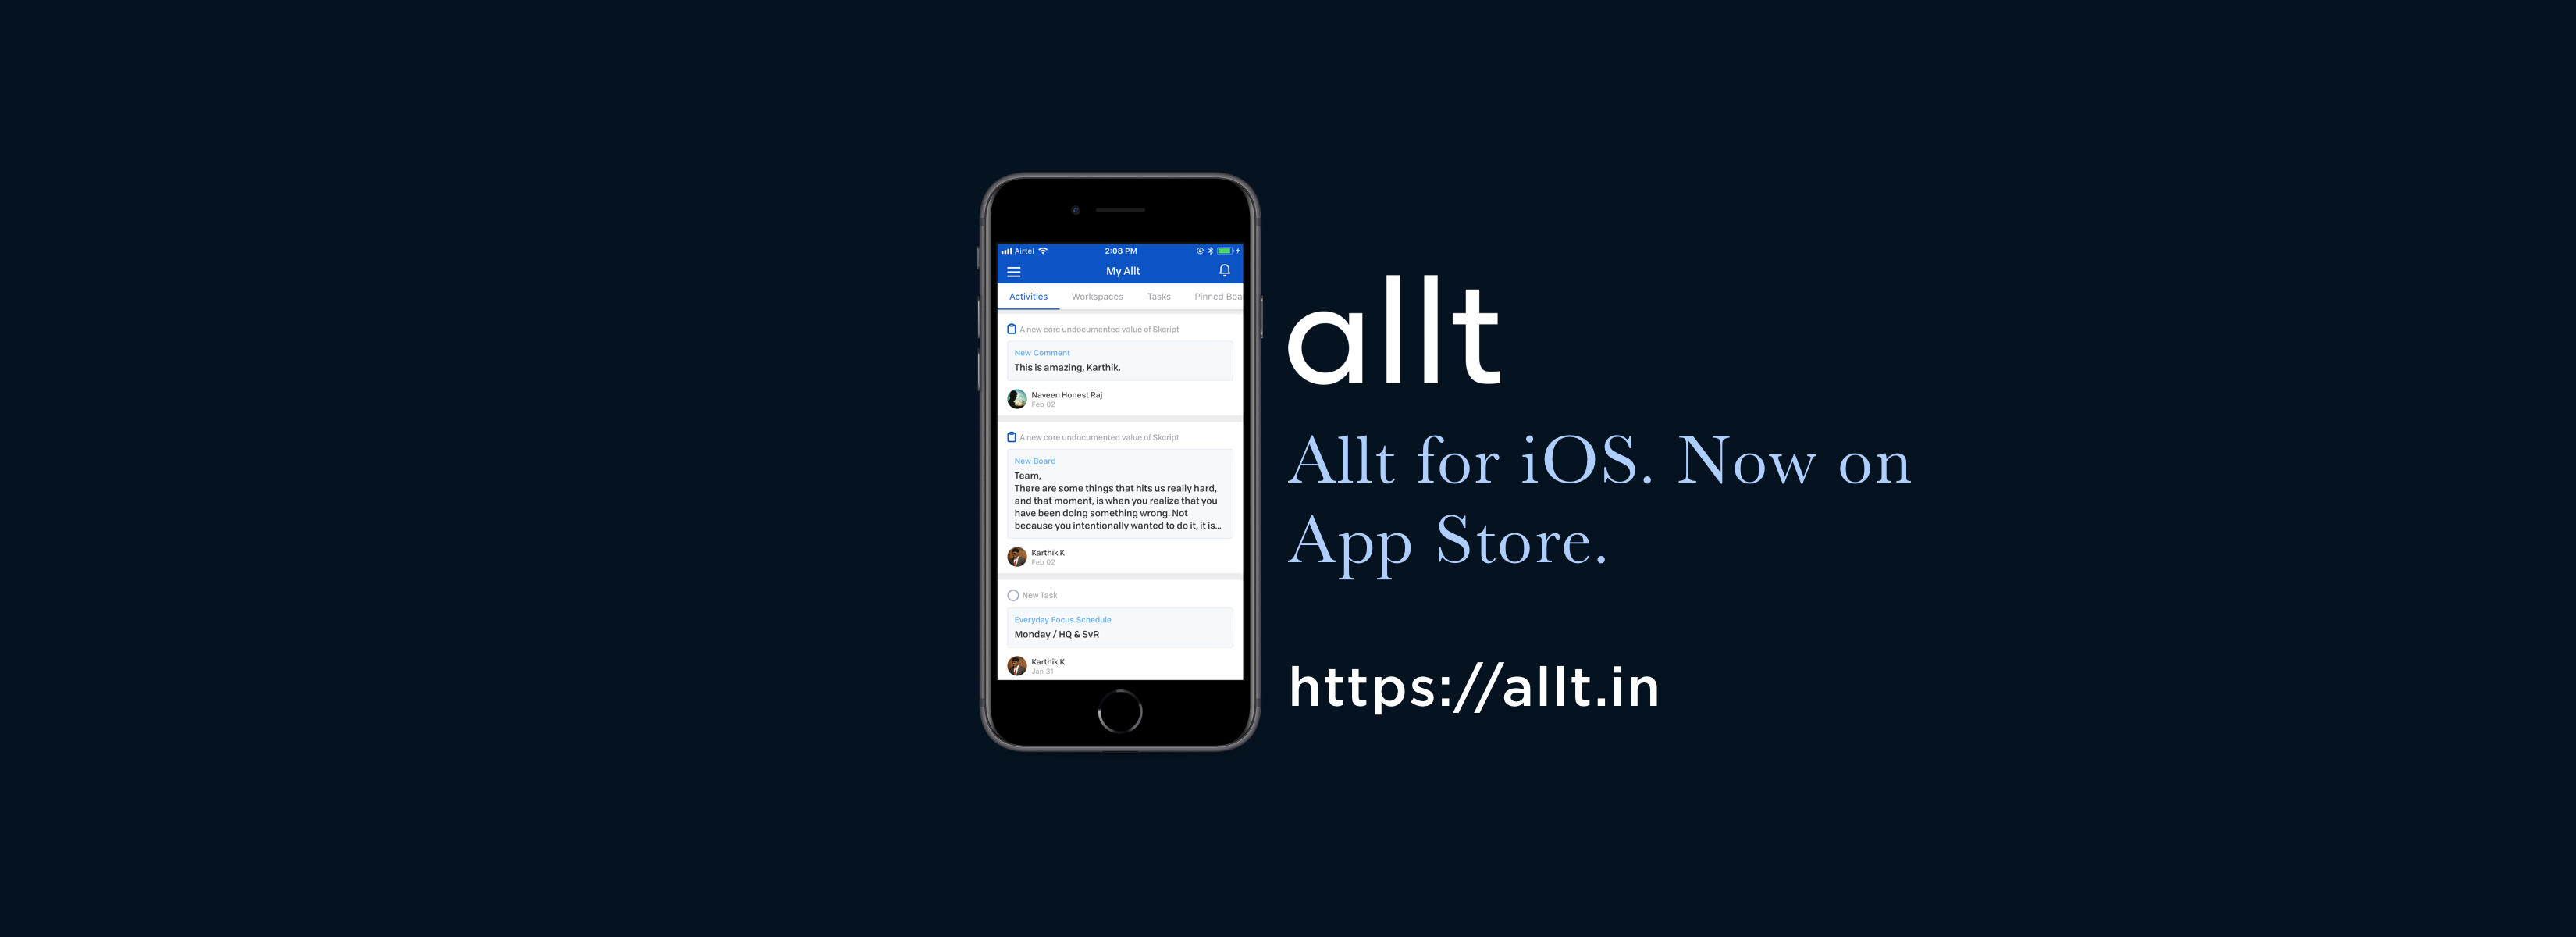 Announcing Allt for iOS. But there's a catch.